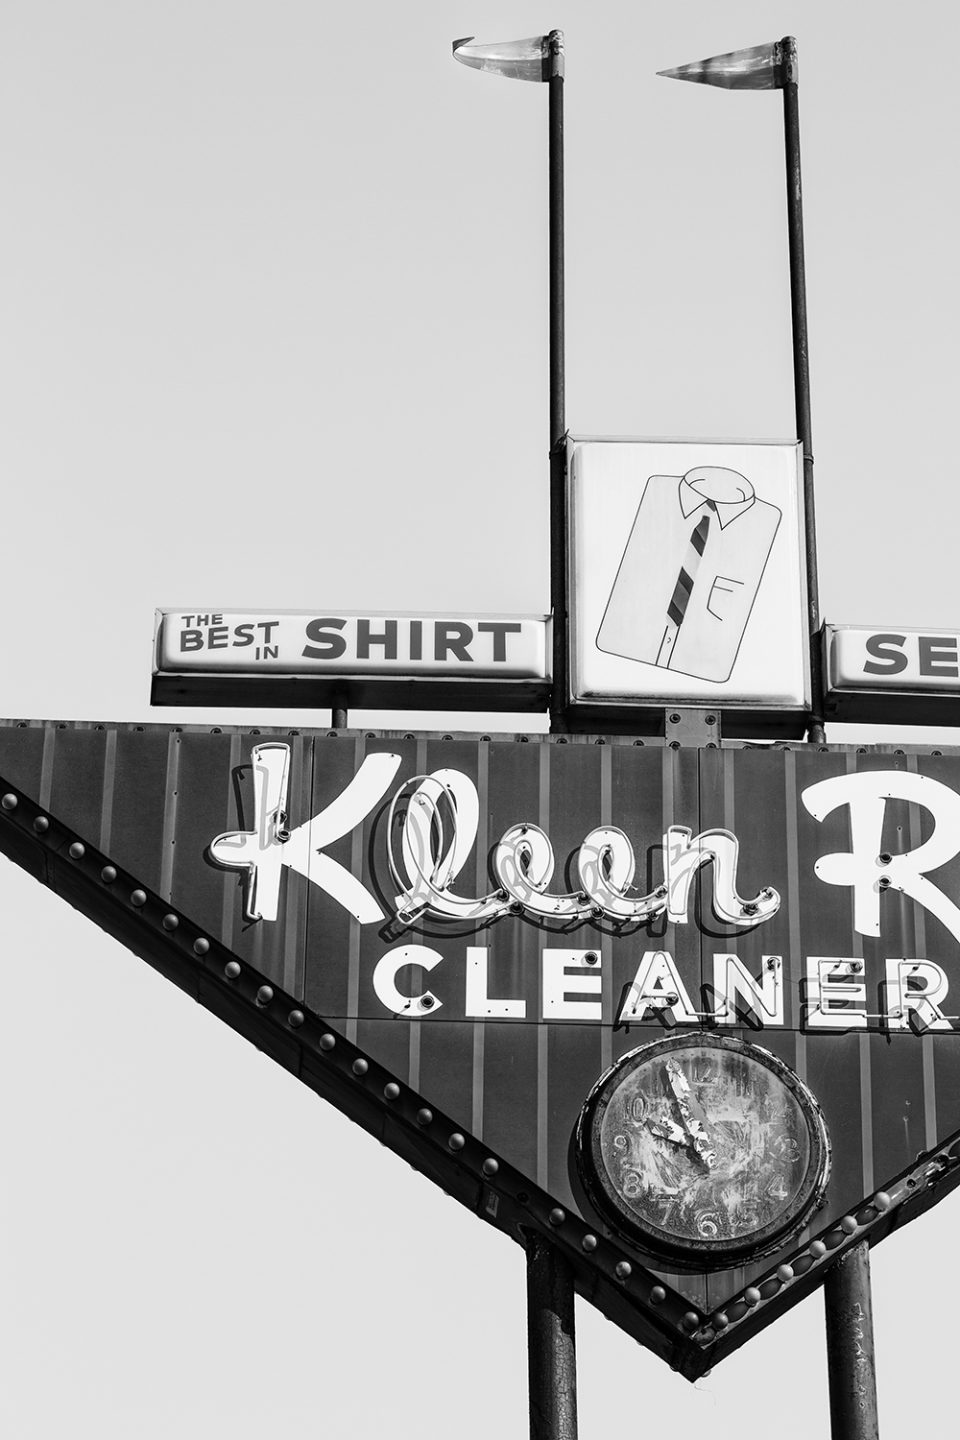 Vintage sign for a dry cleaner, still in operation when I visited Hopkinsville.